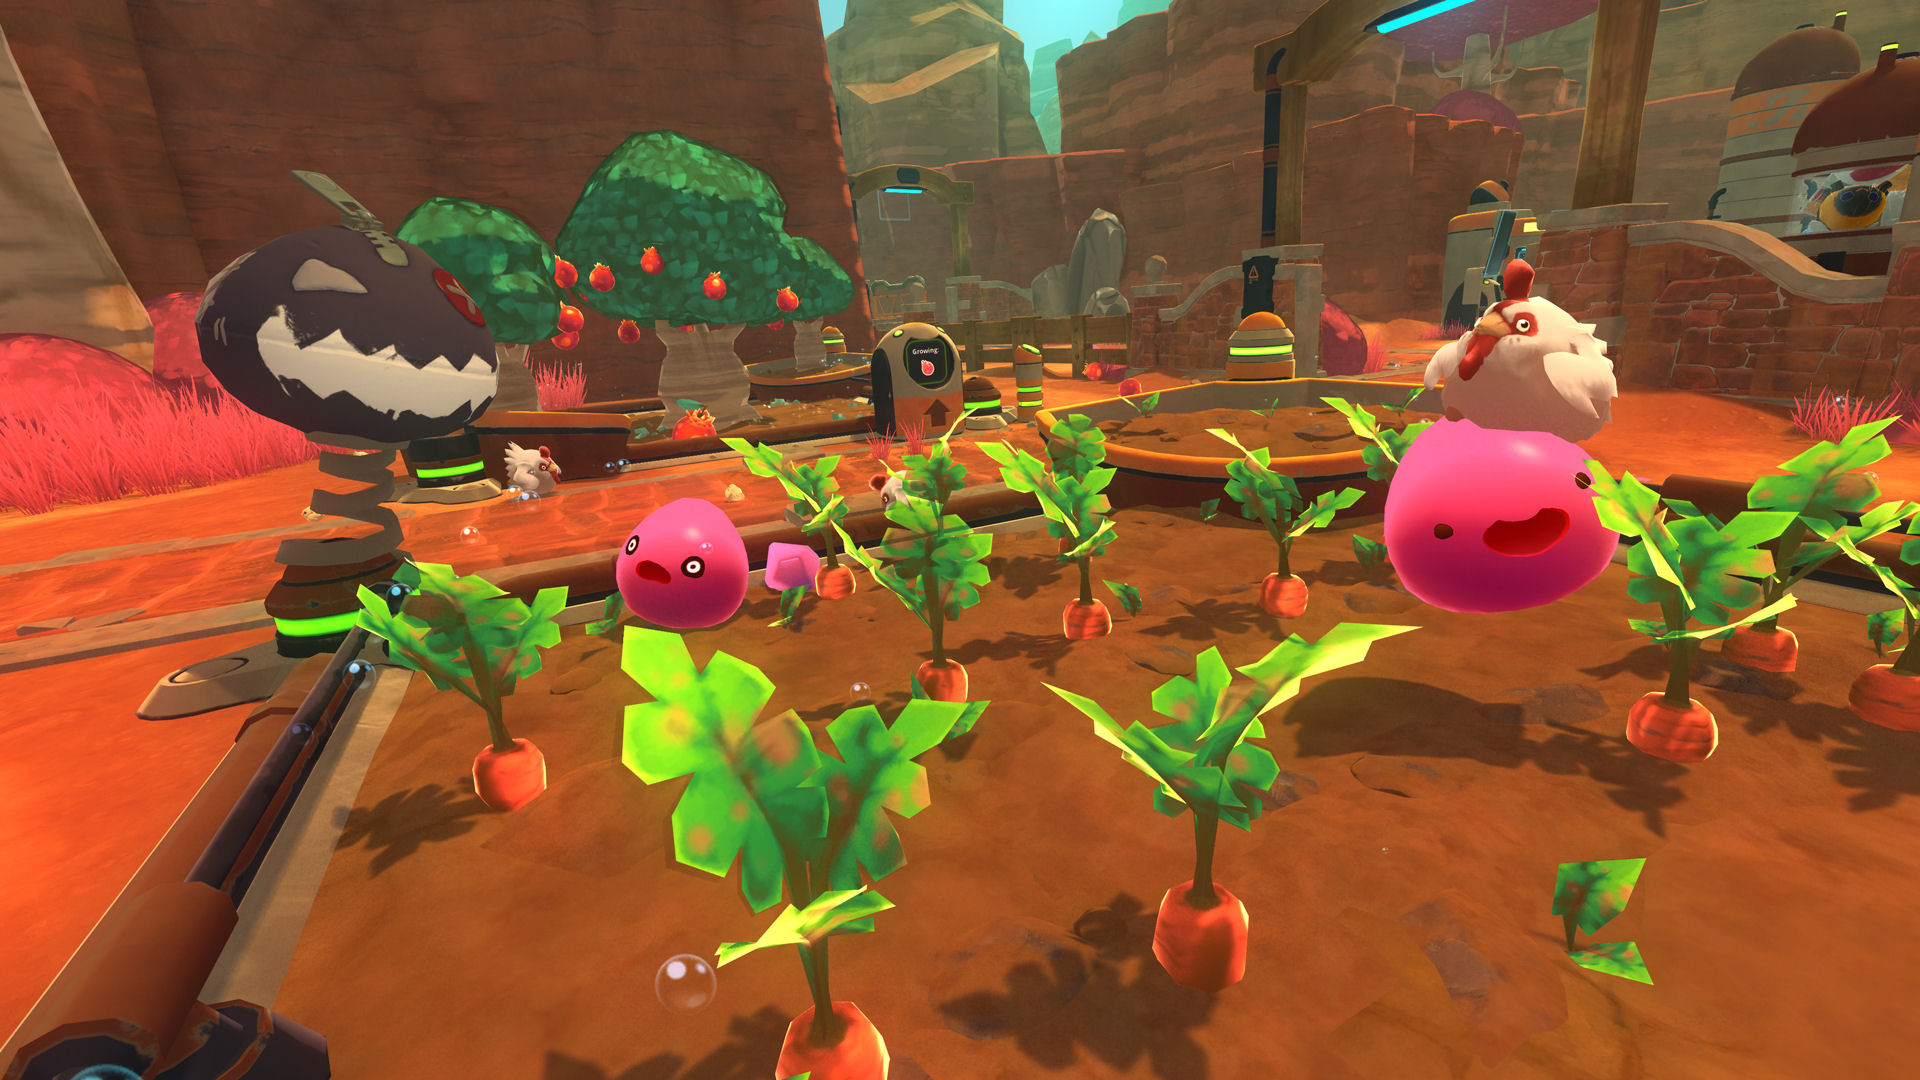 Slime Rancher Screenshot 9.jpg